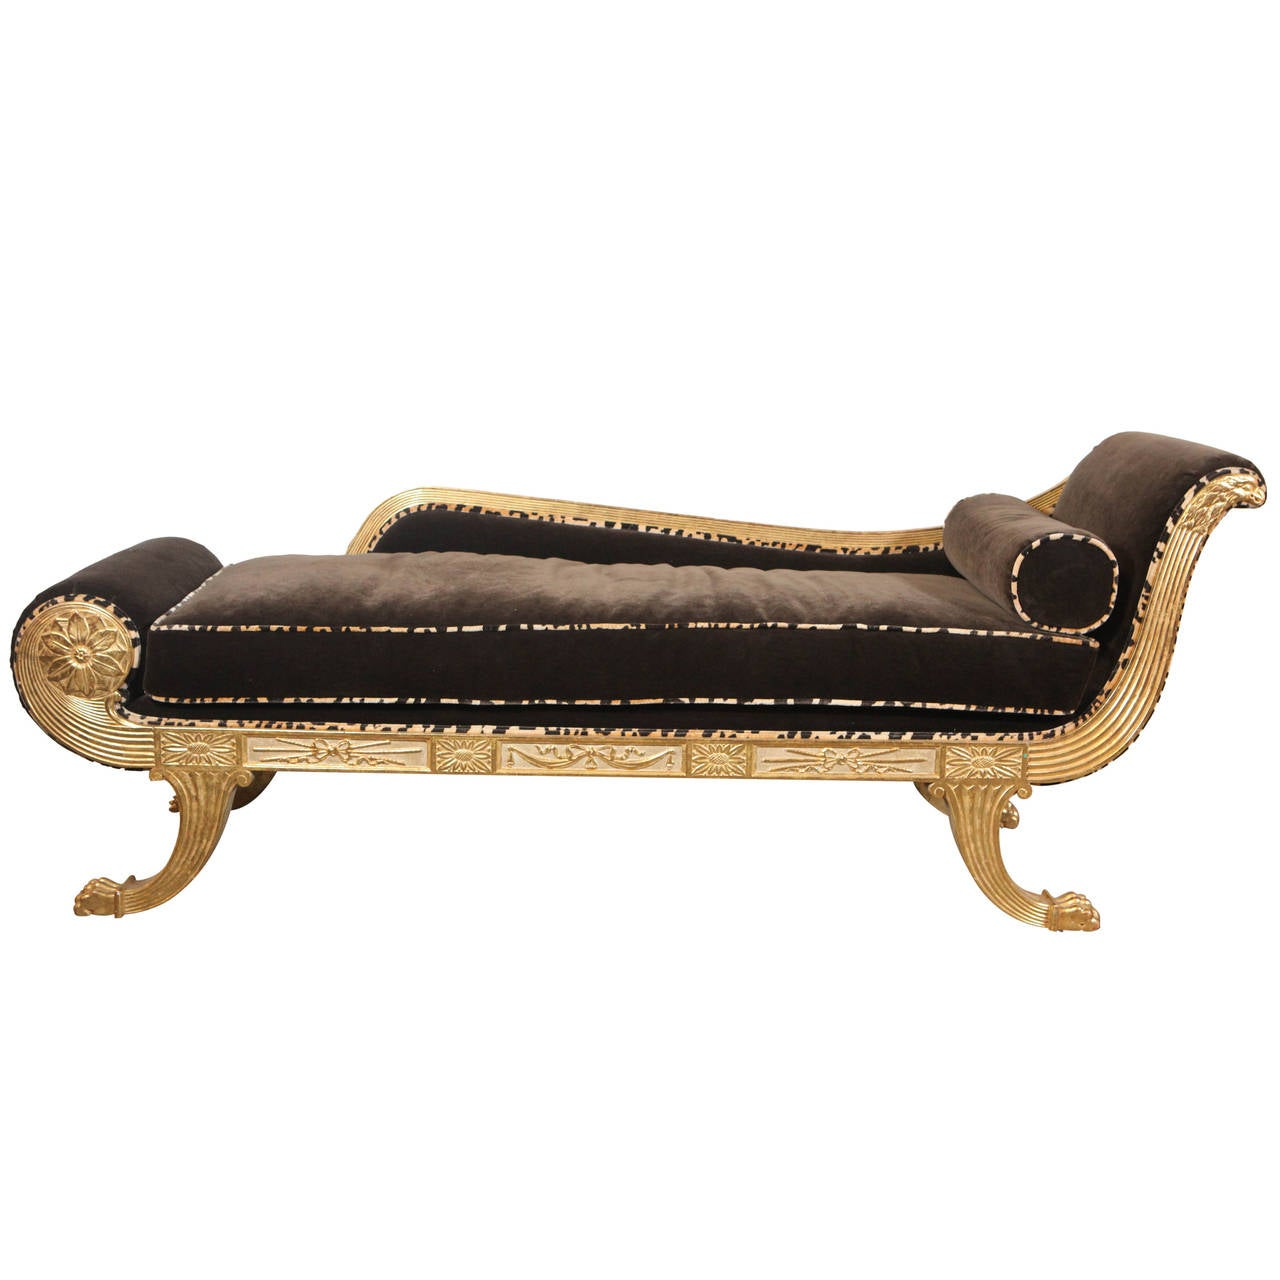 19th century chaise longue for sale at 1stdibs for Chaise for sale